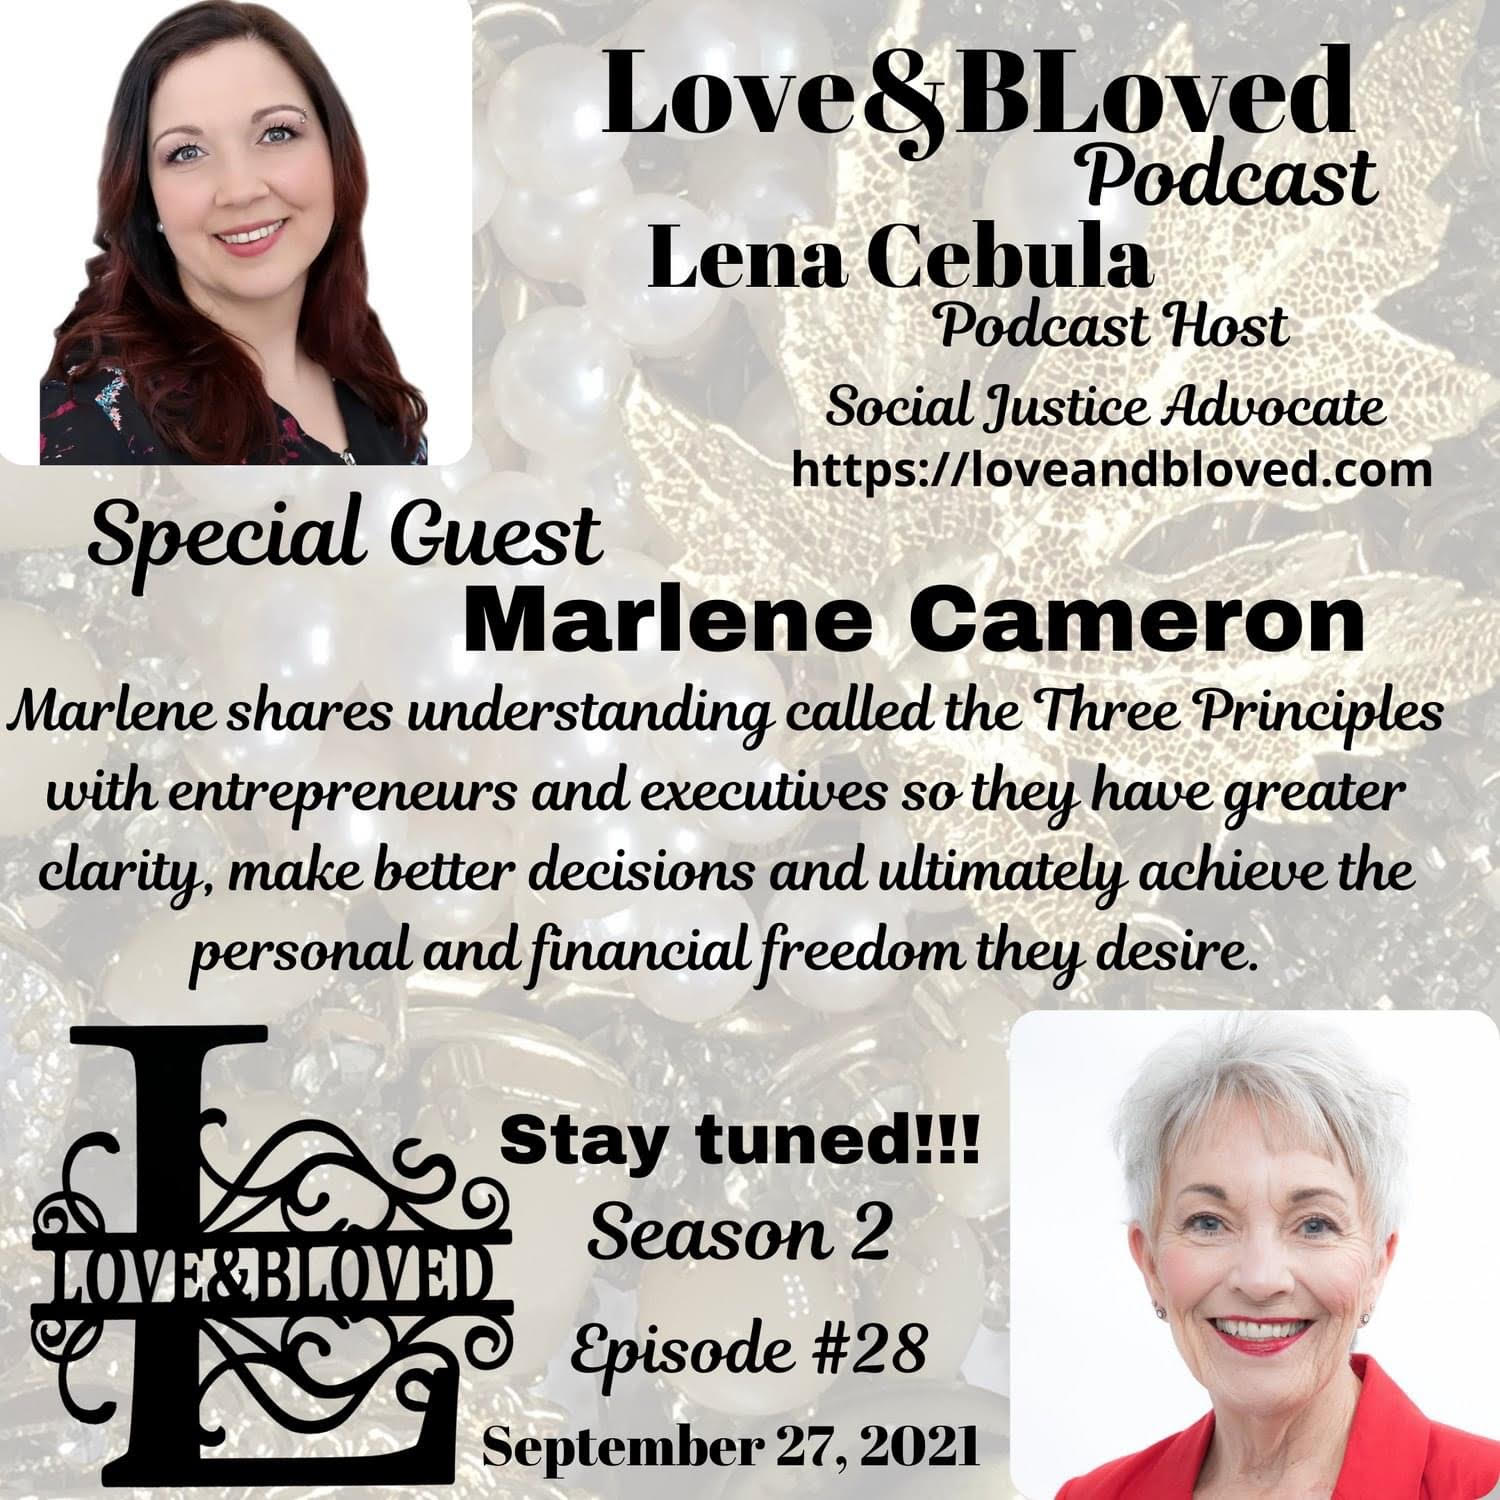 Love and BLoved Podcast with Lena Cebula